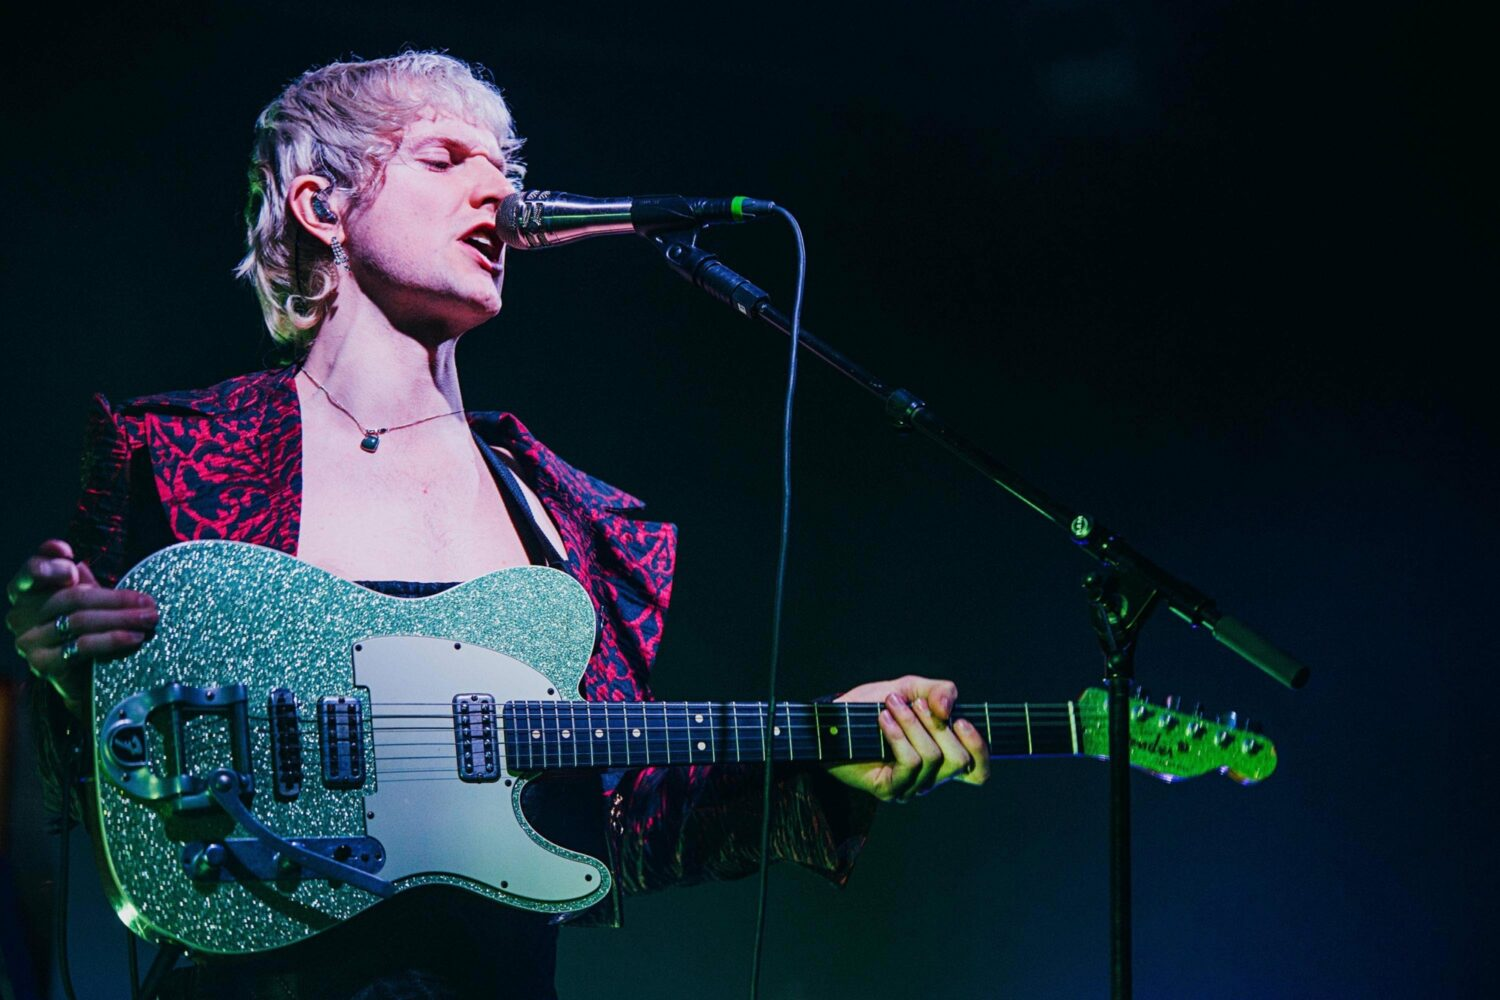 Sundara Karma, The Magic Gang, Pale Waves and more confirmed for Tramlines 2020